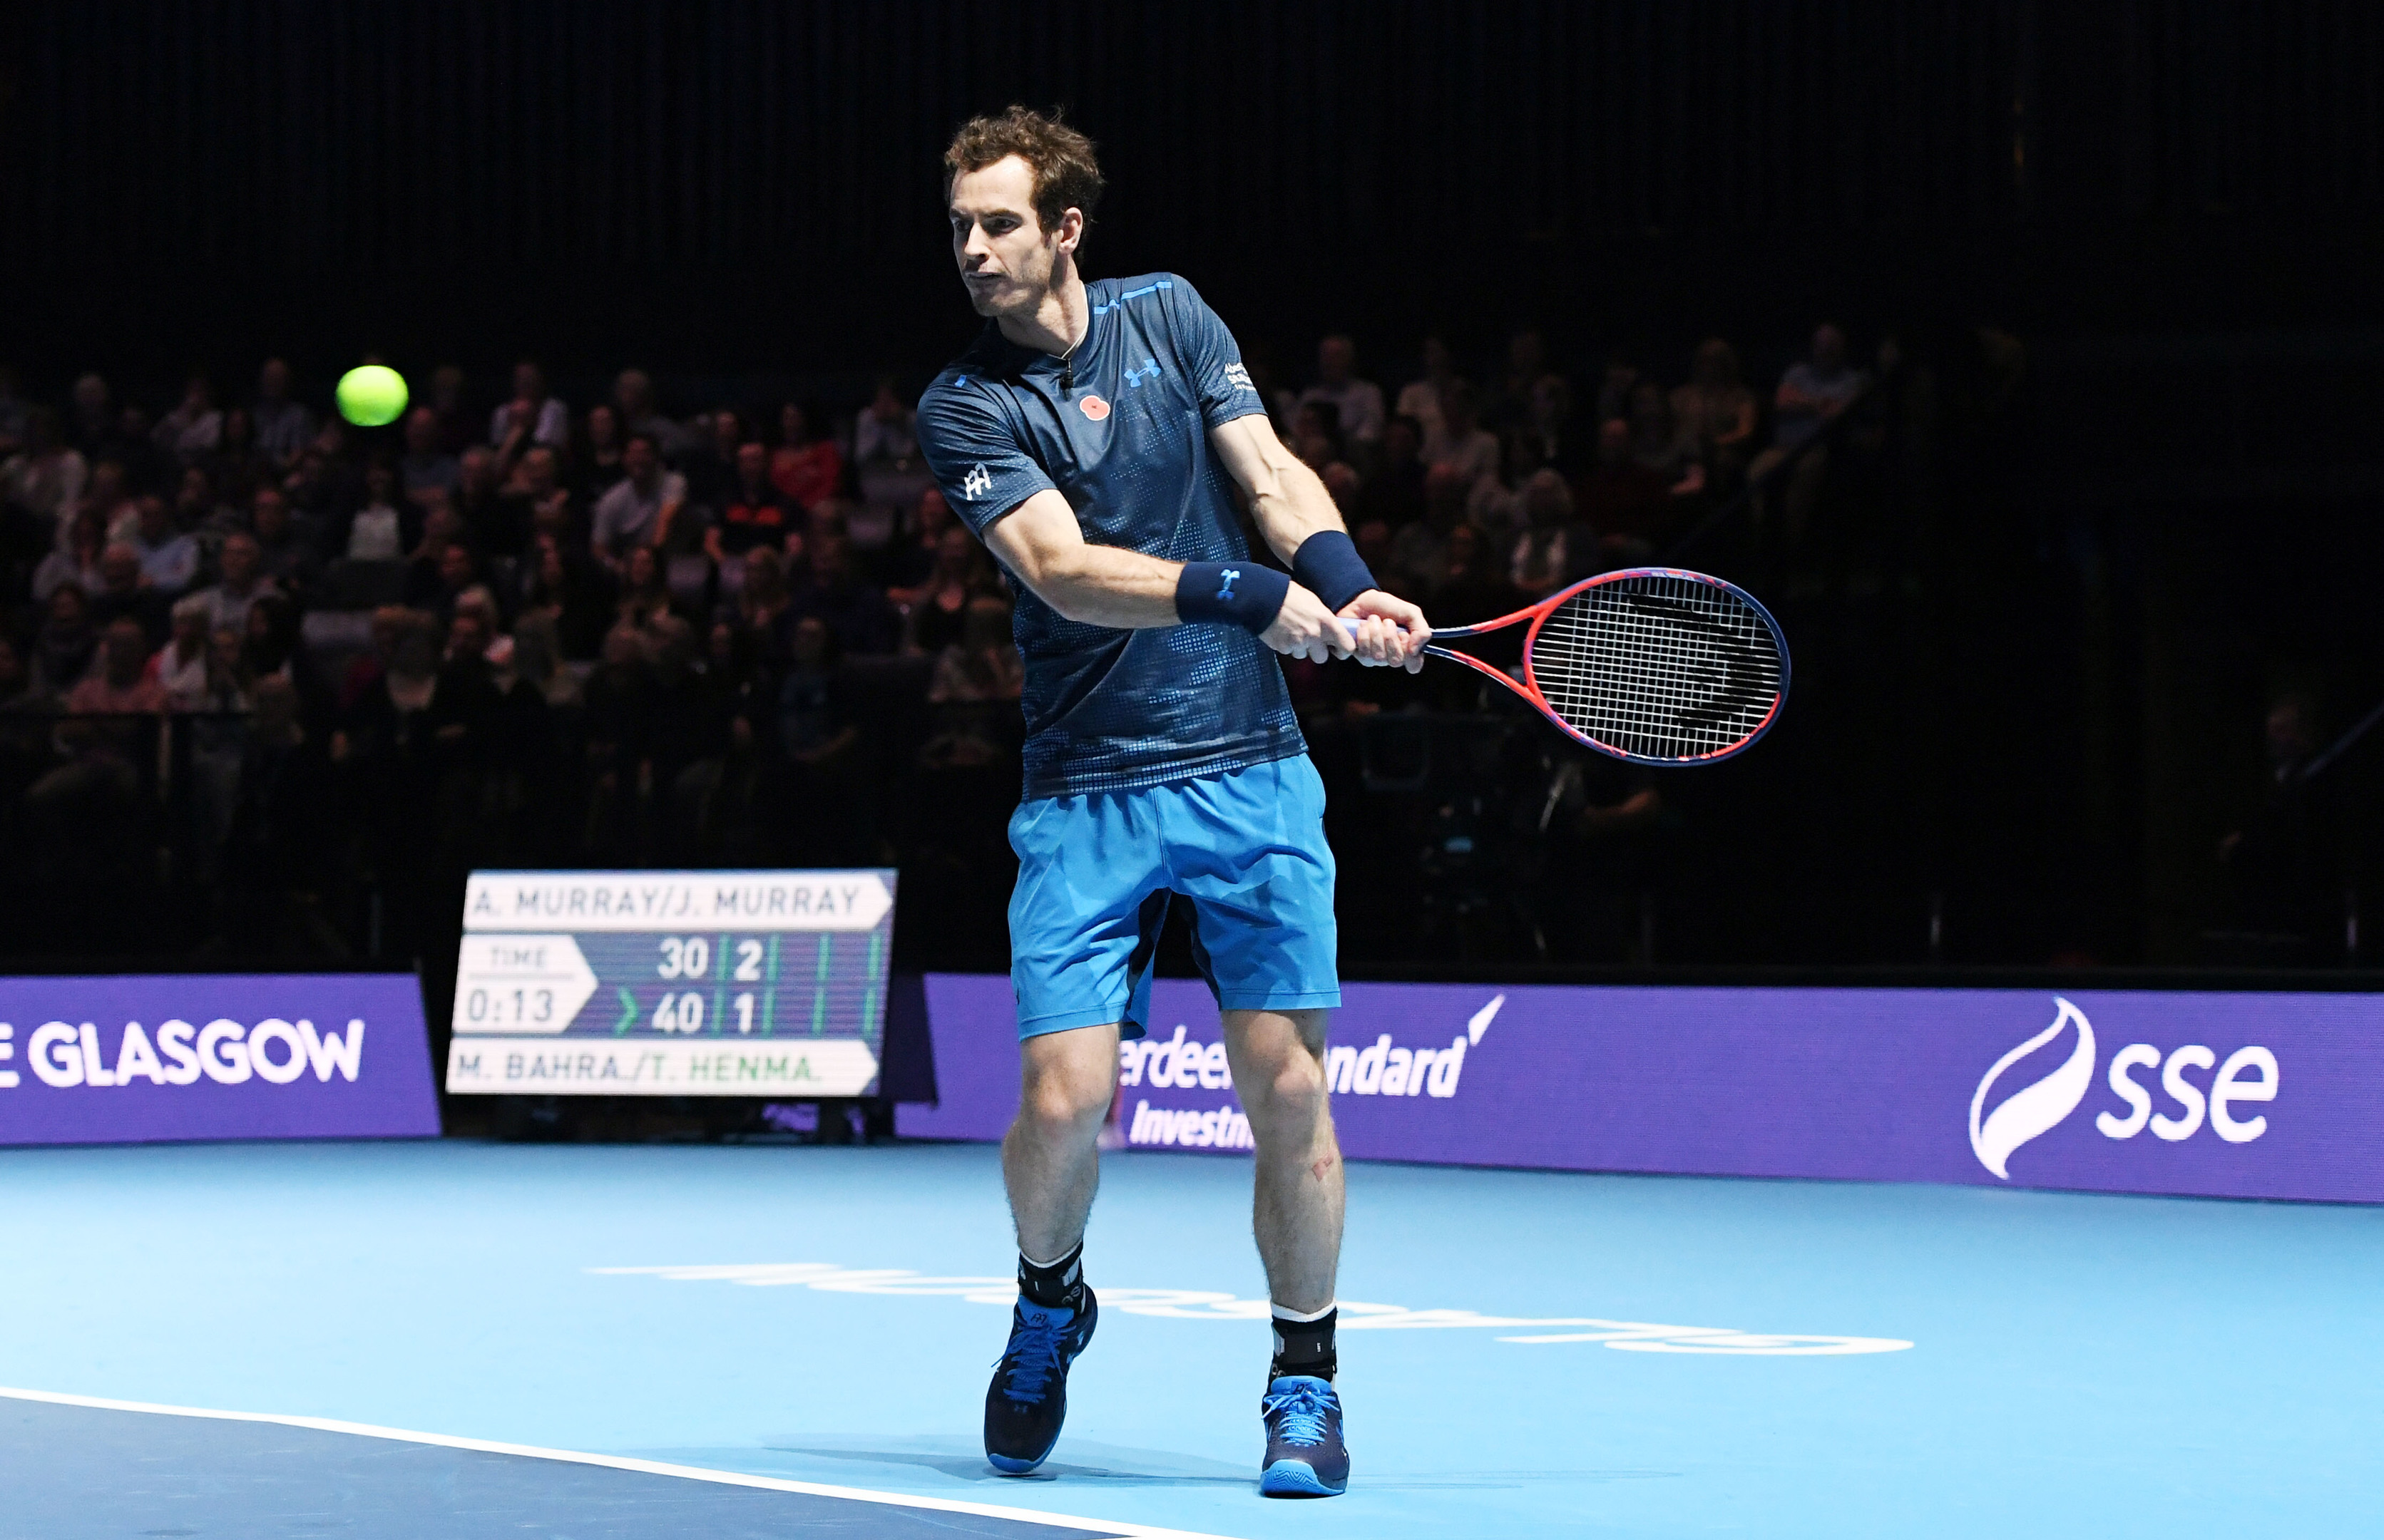 Sir Andy Murray and wife Kim have welcomed their second child into the world.